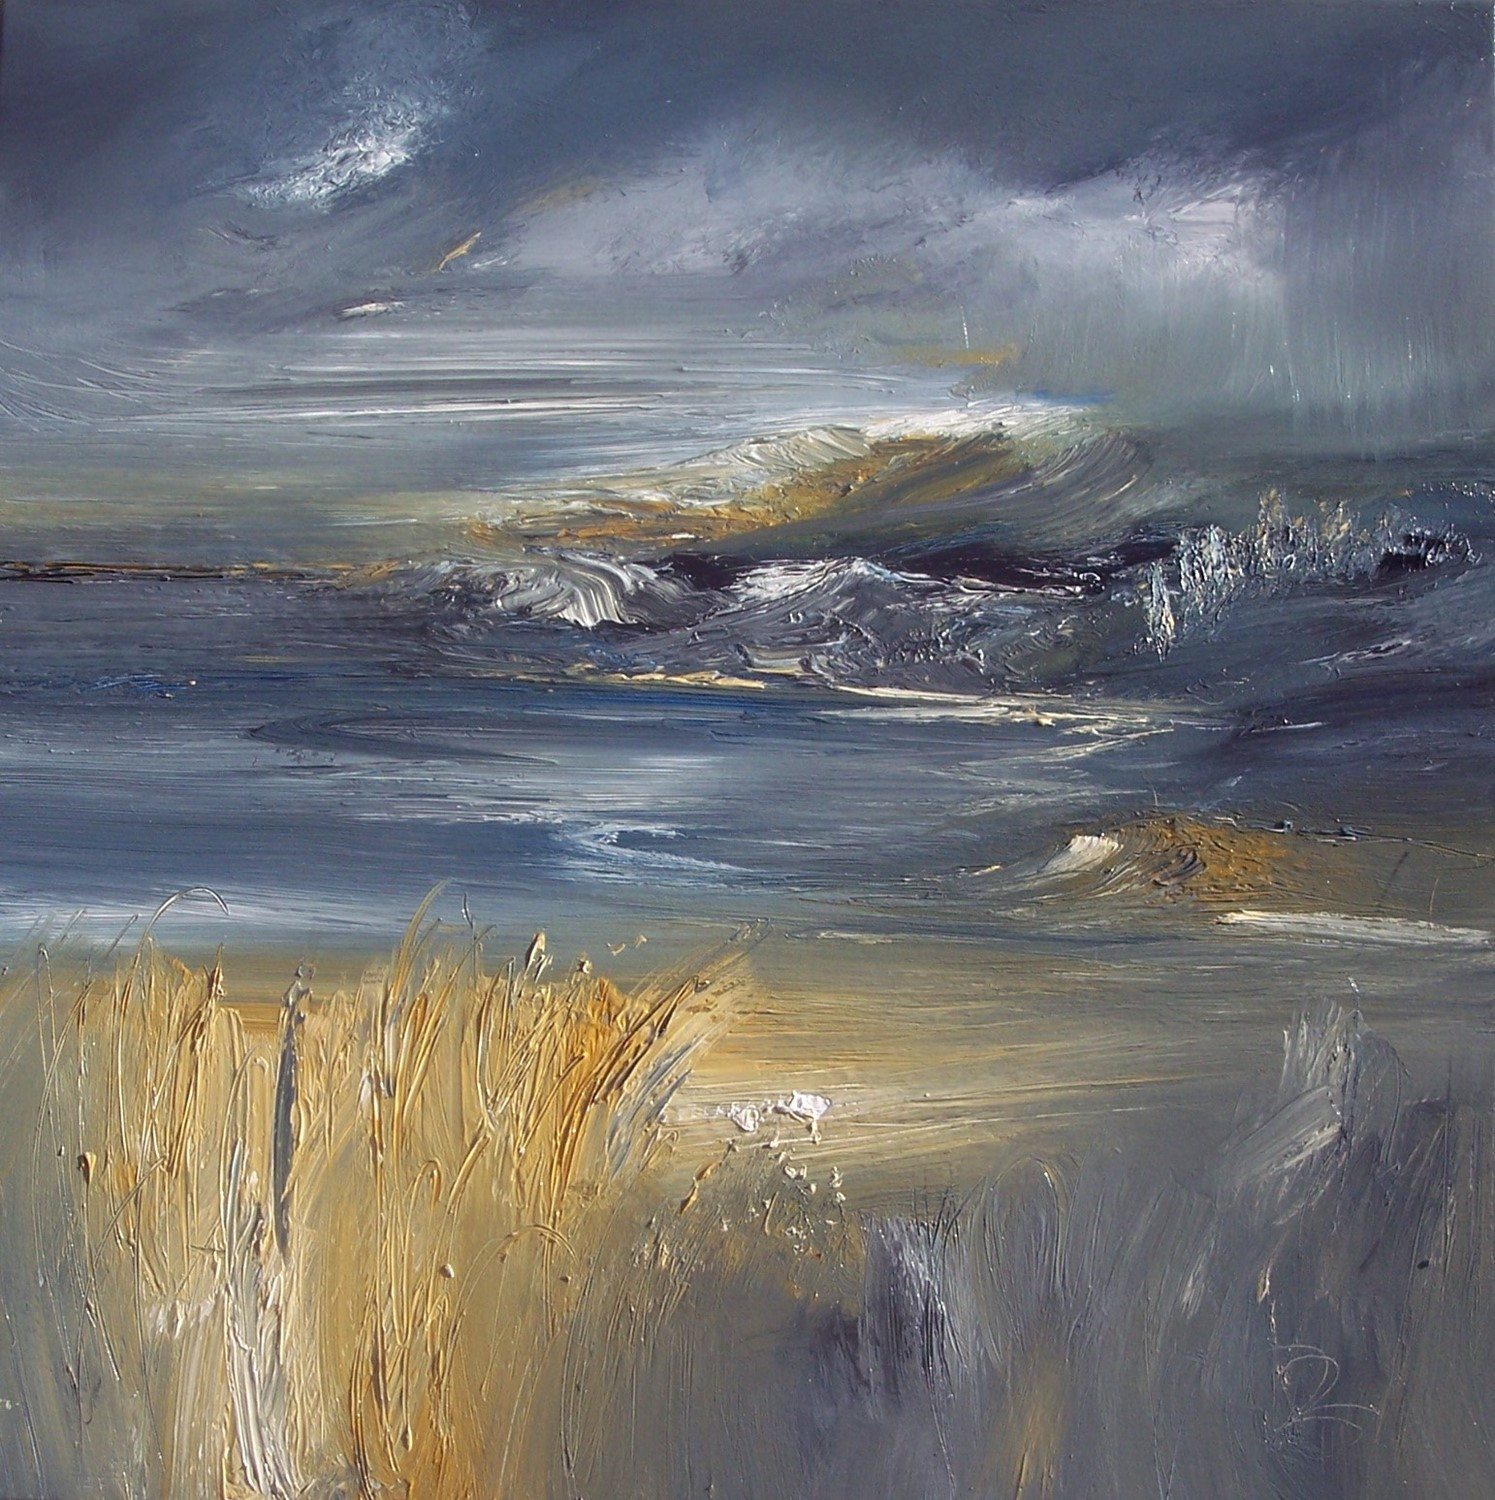 'A storm Looming Oil' by artist Rosanne Barr